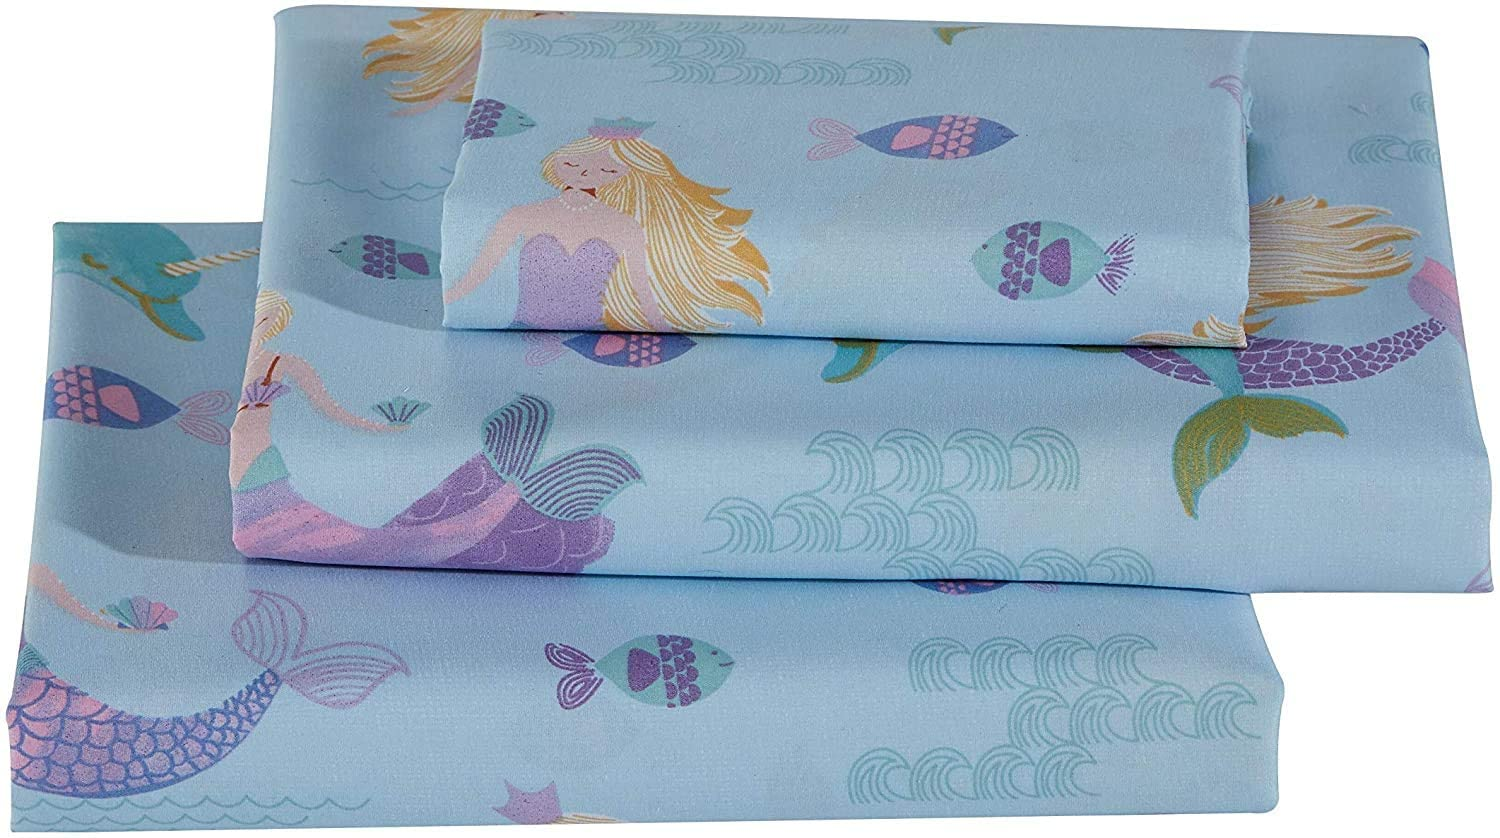 Sheet Set Dolphin Mermaid Under Water Sea Life Mermaids Dolphins Fishes Light Blue Purple New # Dolphin Mermaid (Twin)